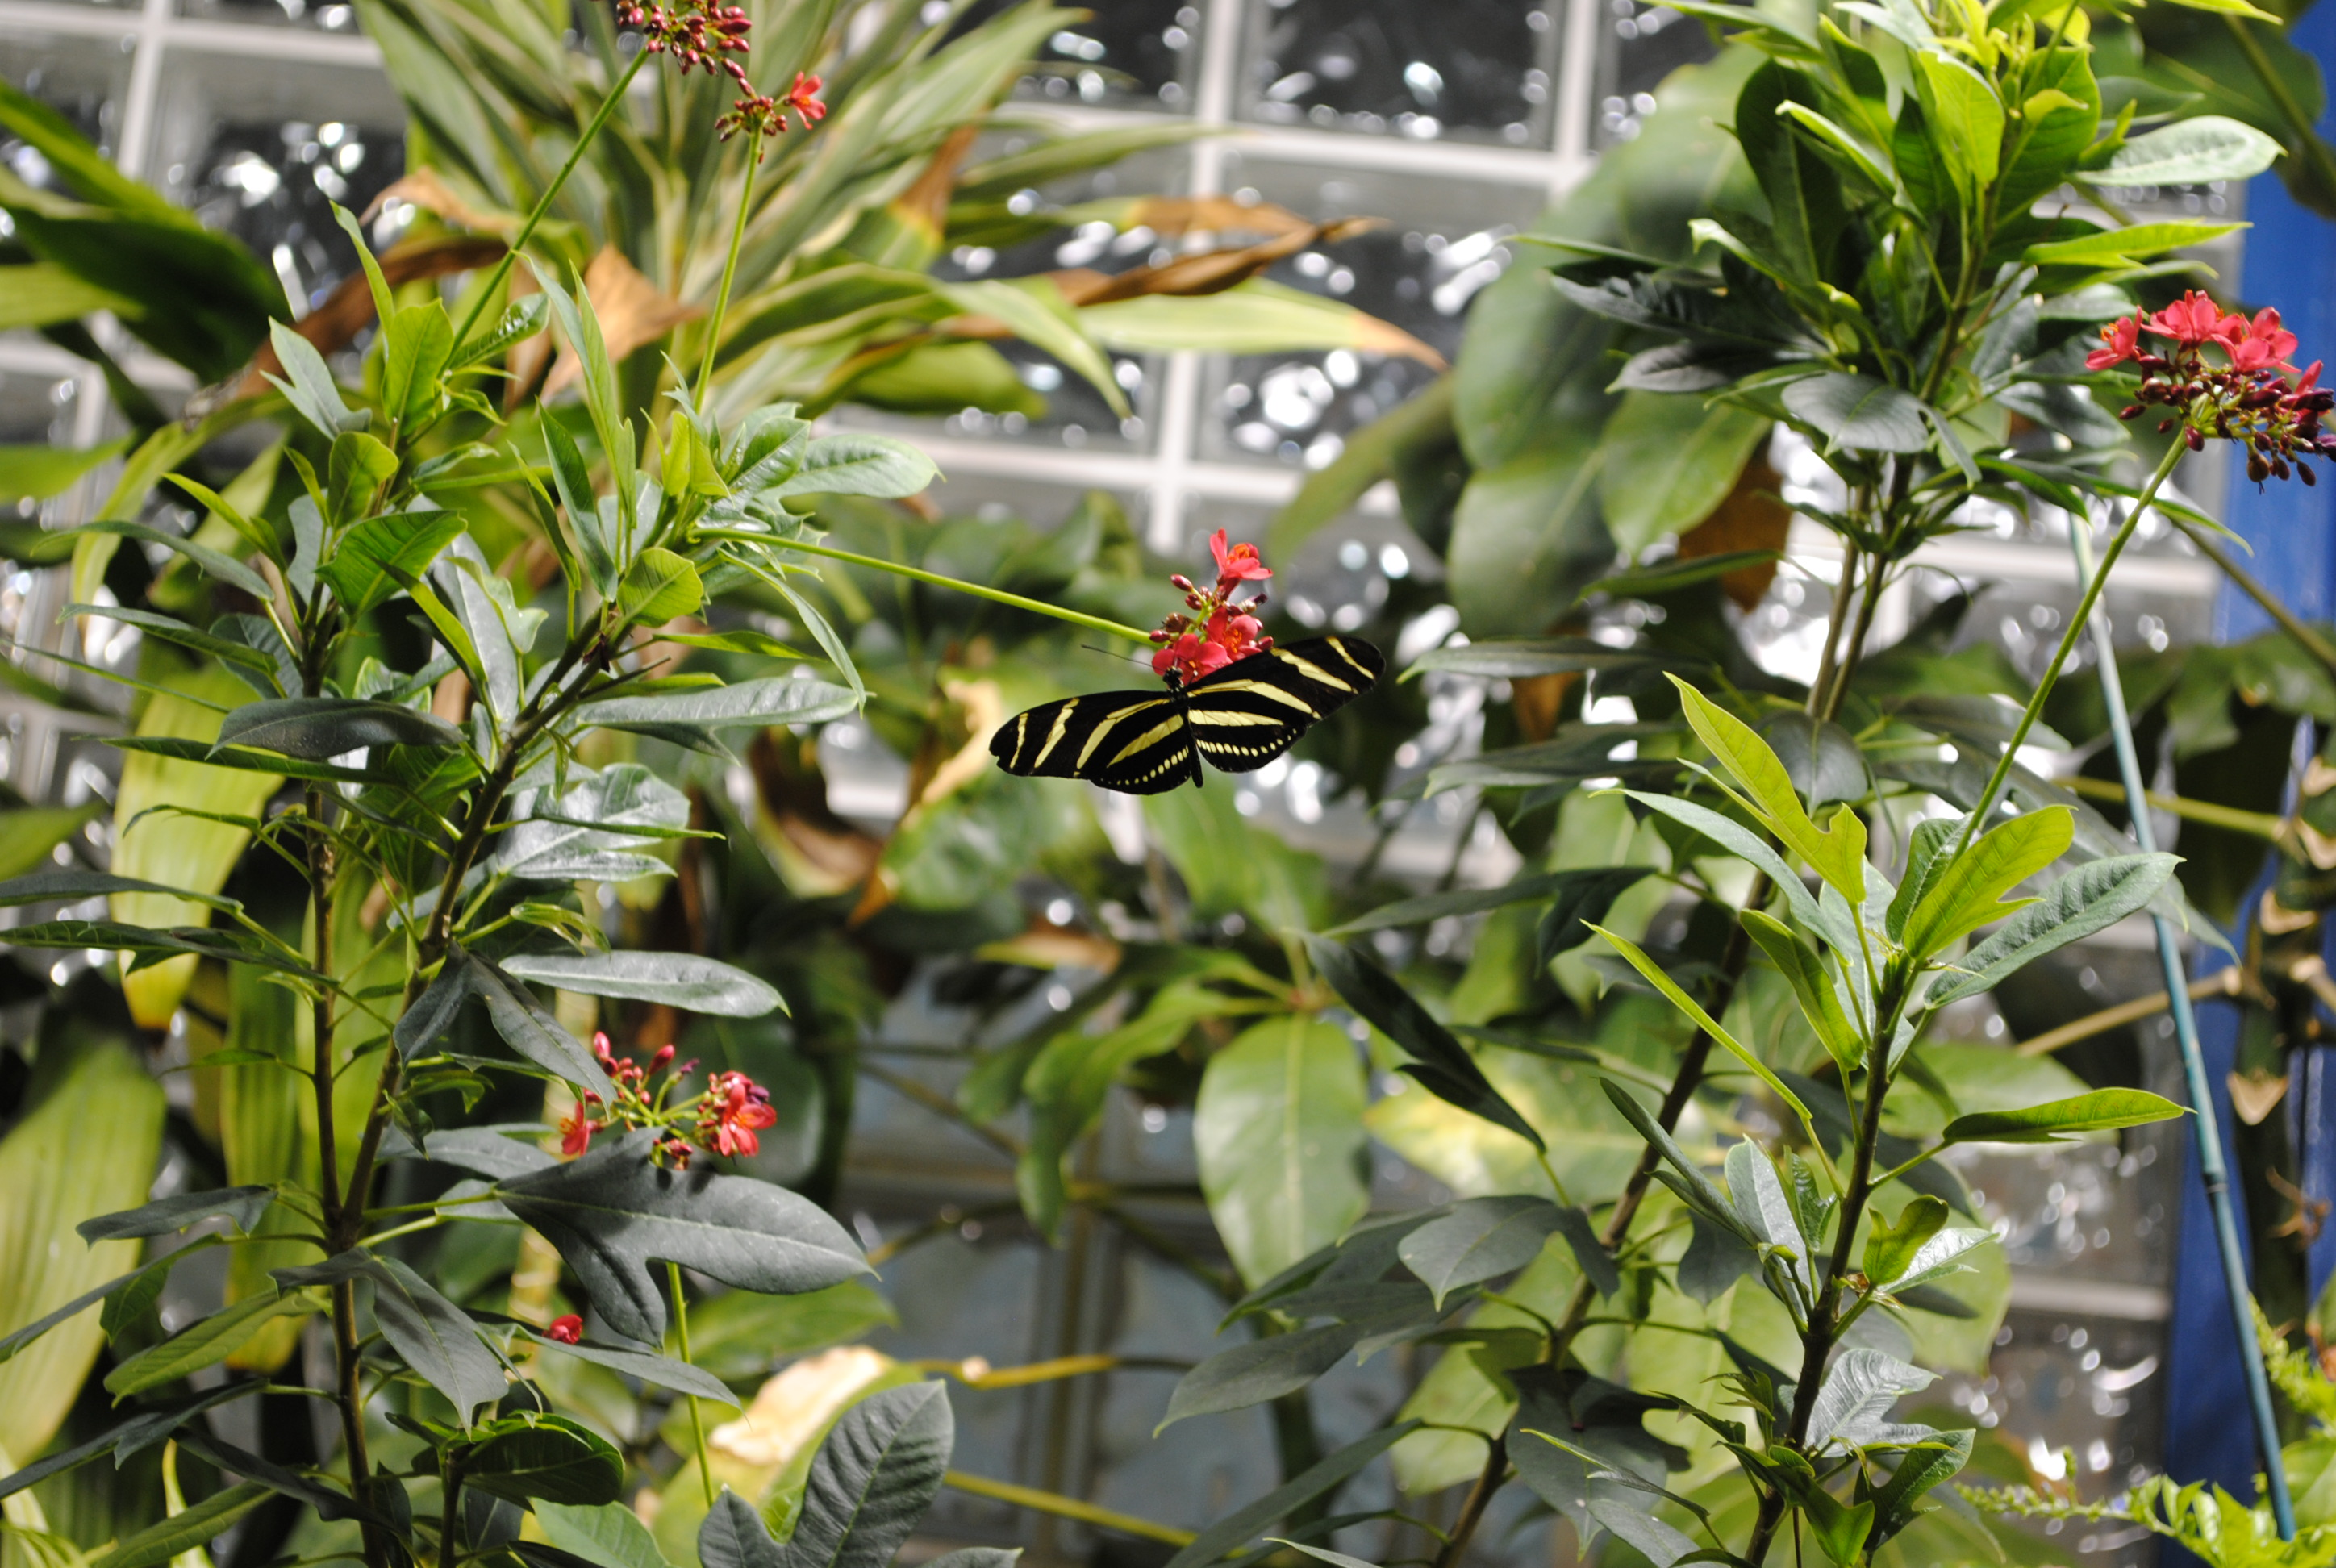 ... Beautiful Butterflies That I Took With A Nikon D3000 SLR At The Museum  Of Natural History In Philadelphia. The Museum Has A Butterfly Room That Is  Quite ...